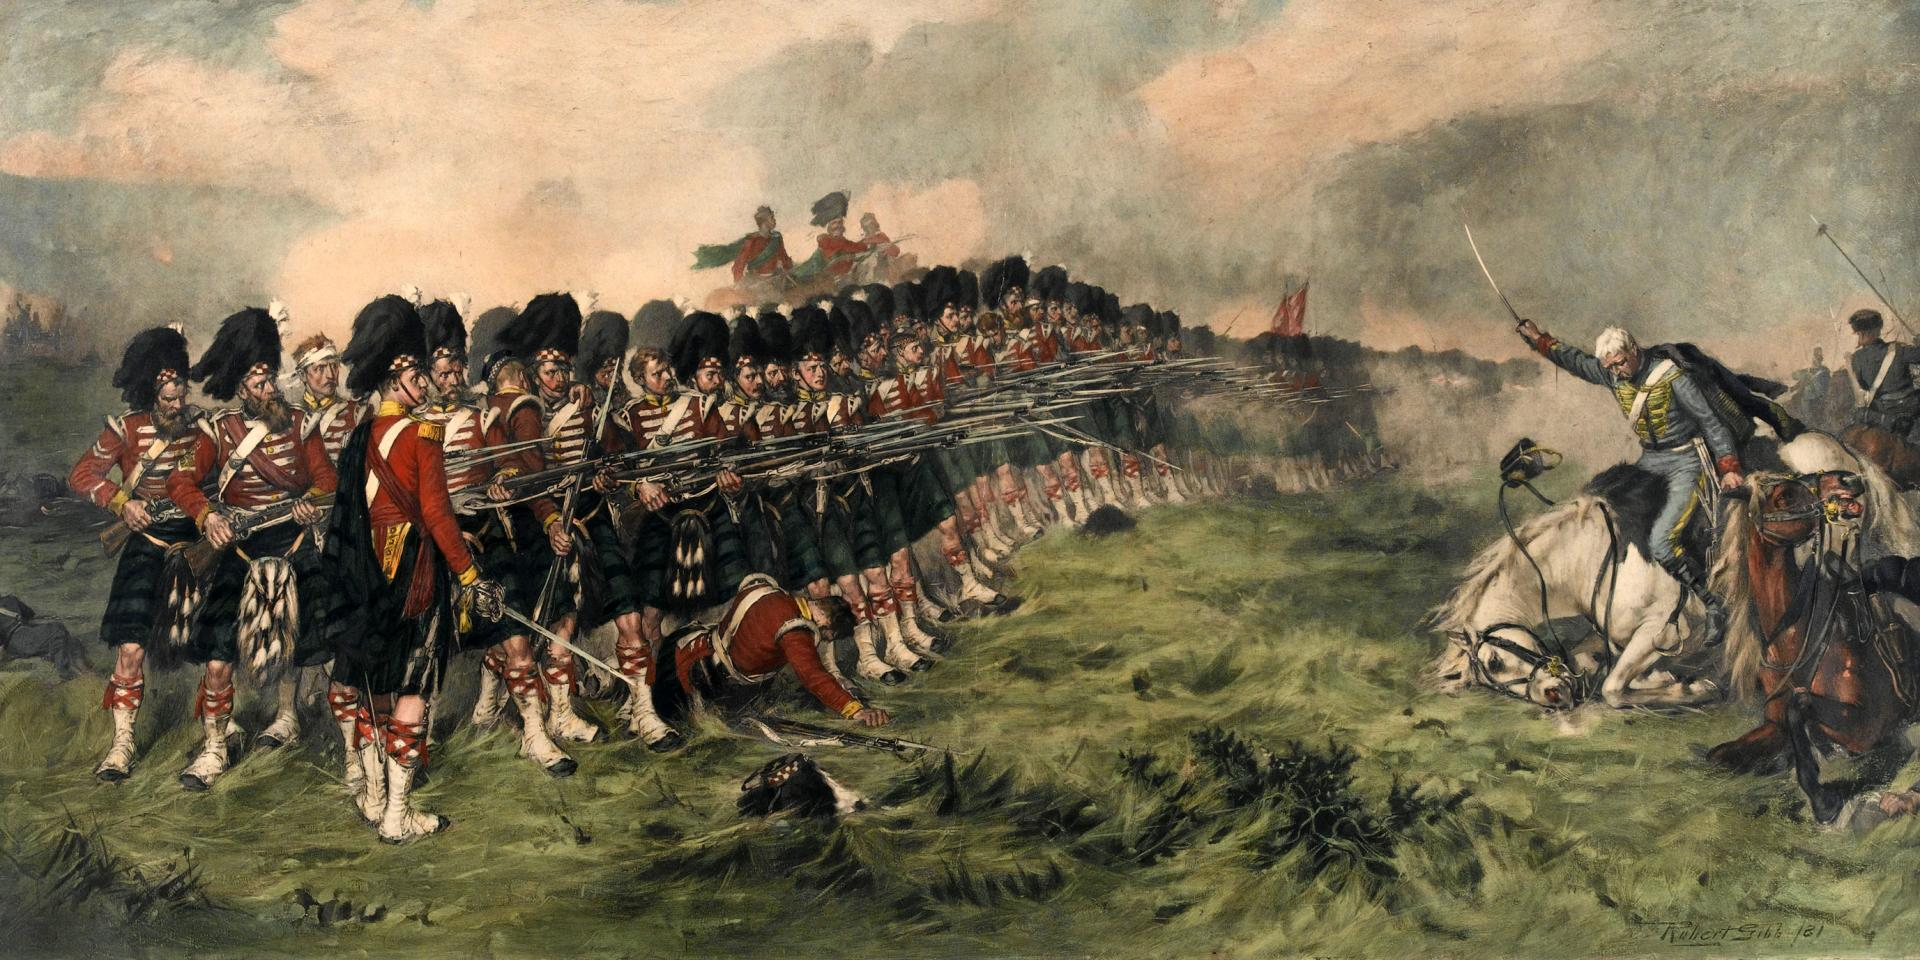 The Thin Red Line, 25 October 1881